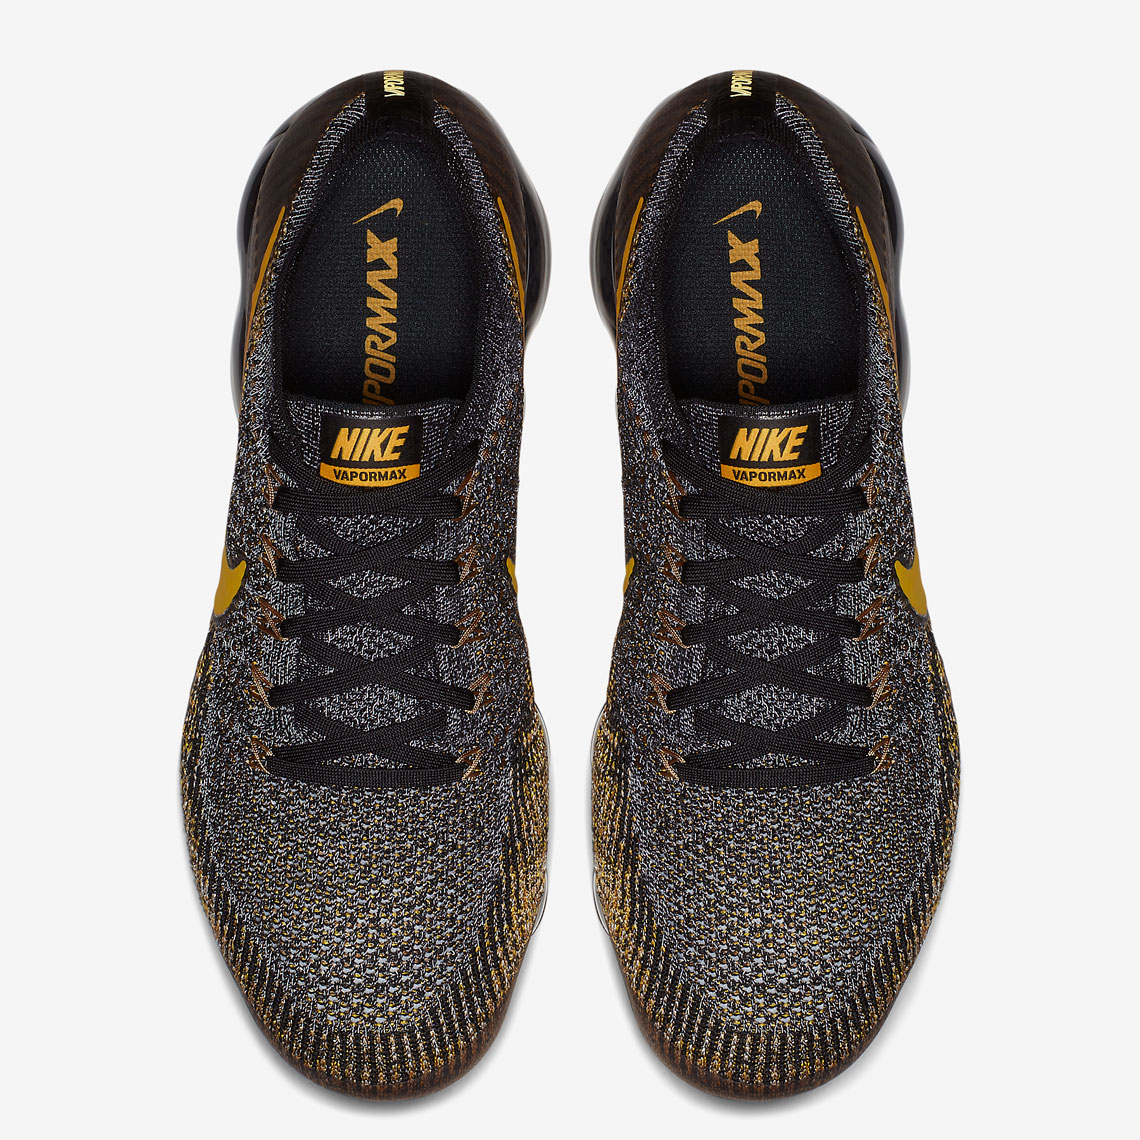 904436f652 Nike Vapormax AVAILABLE AT Nike  190. Color  Black Dark Grey Mineral Gold  Style Code  849558-021